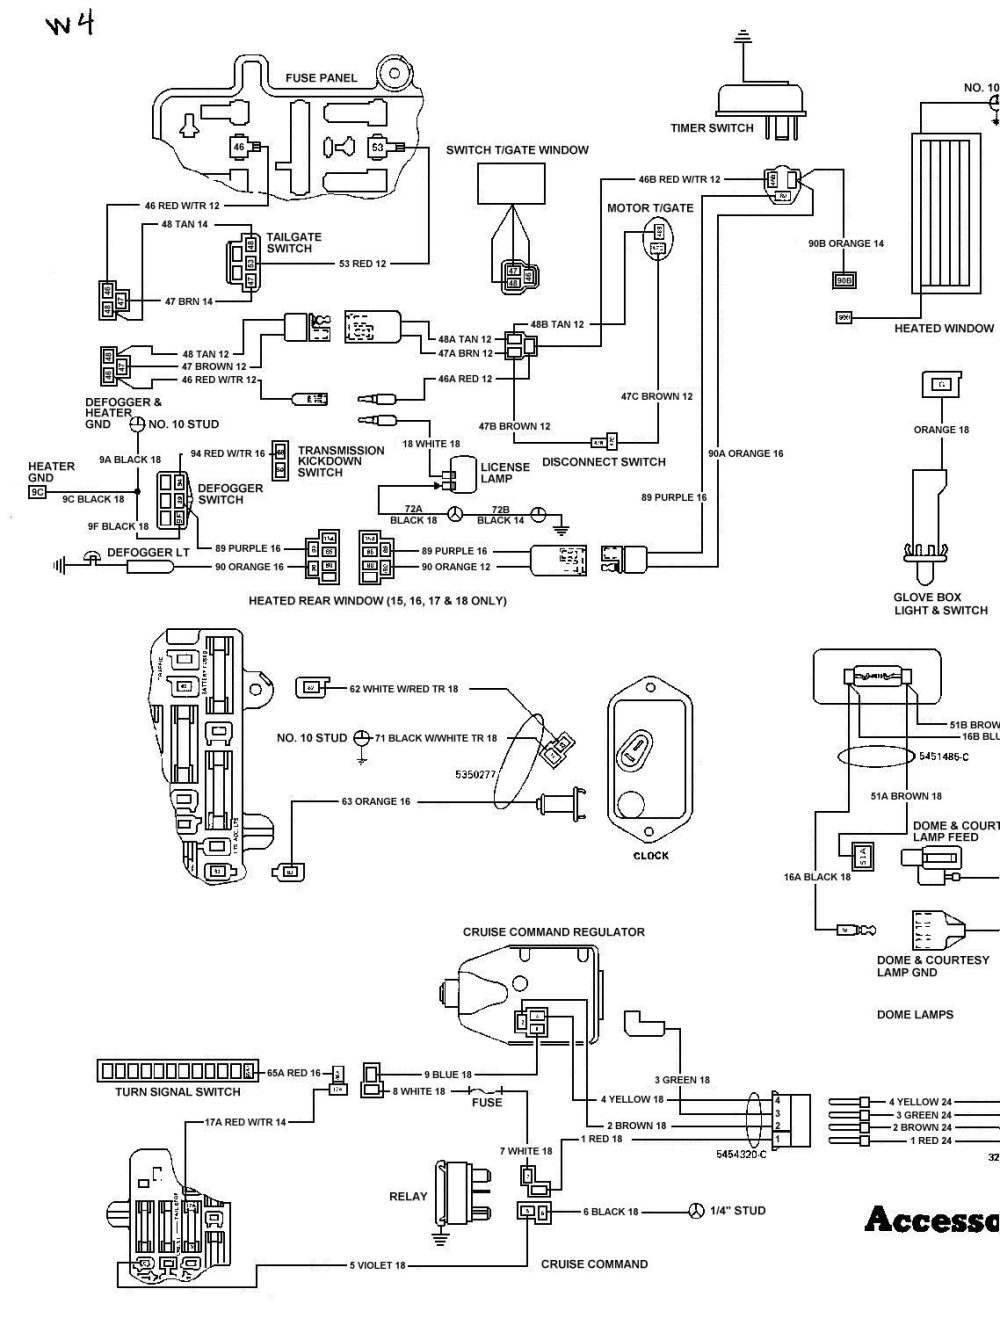 medium resolution of  jeep cj7 dash wiring diagram 78 fsj wiringdiagrampage4